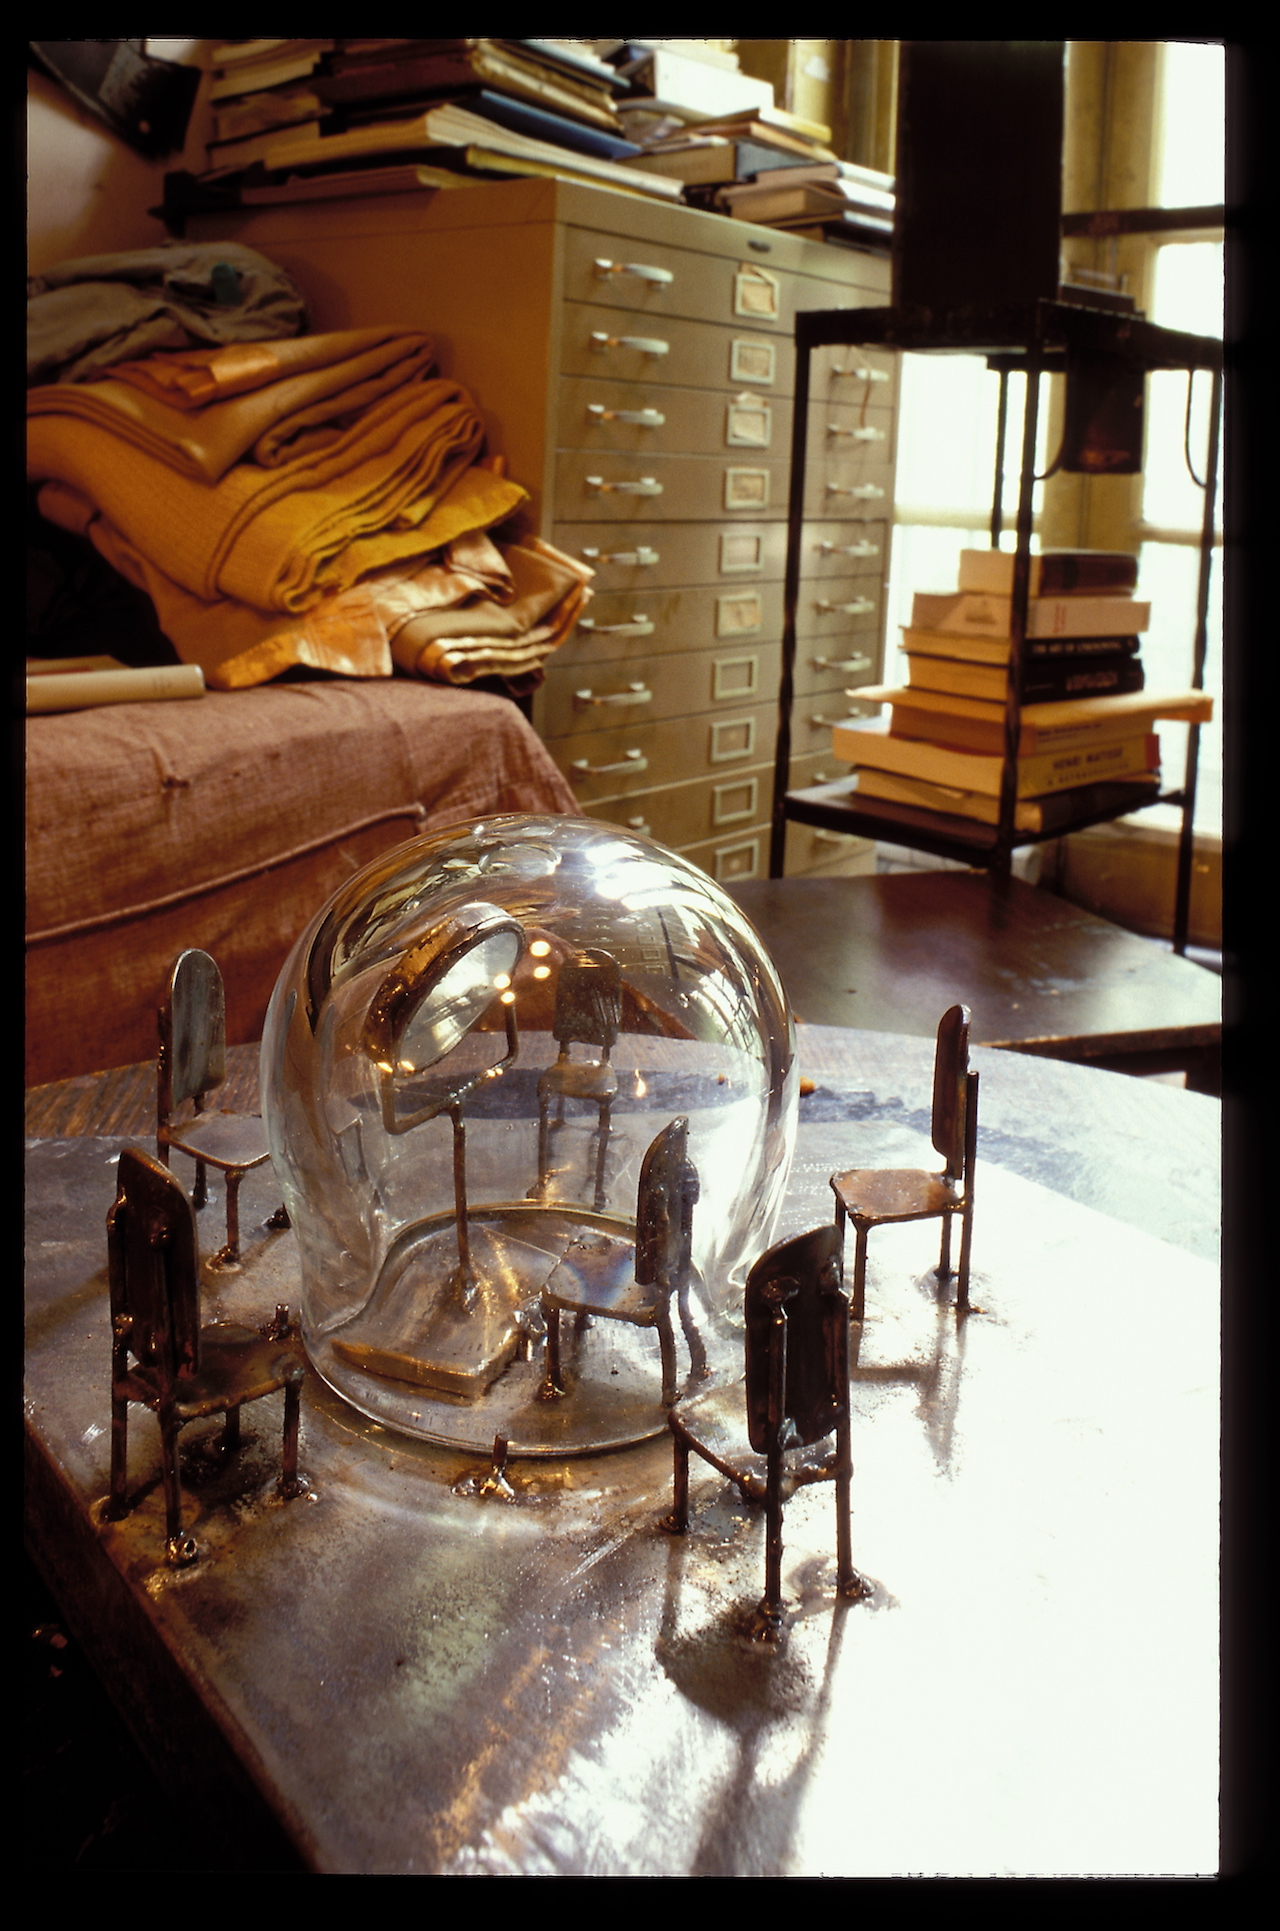 Louise Bourgeois' Chelsea apartment